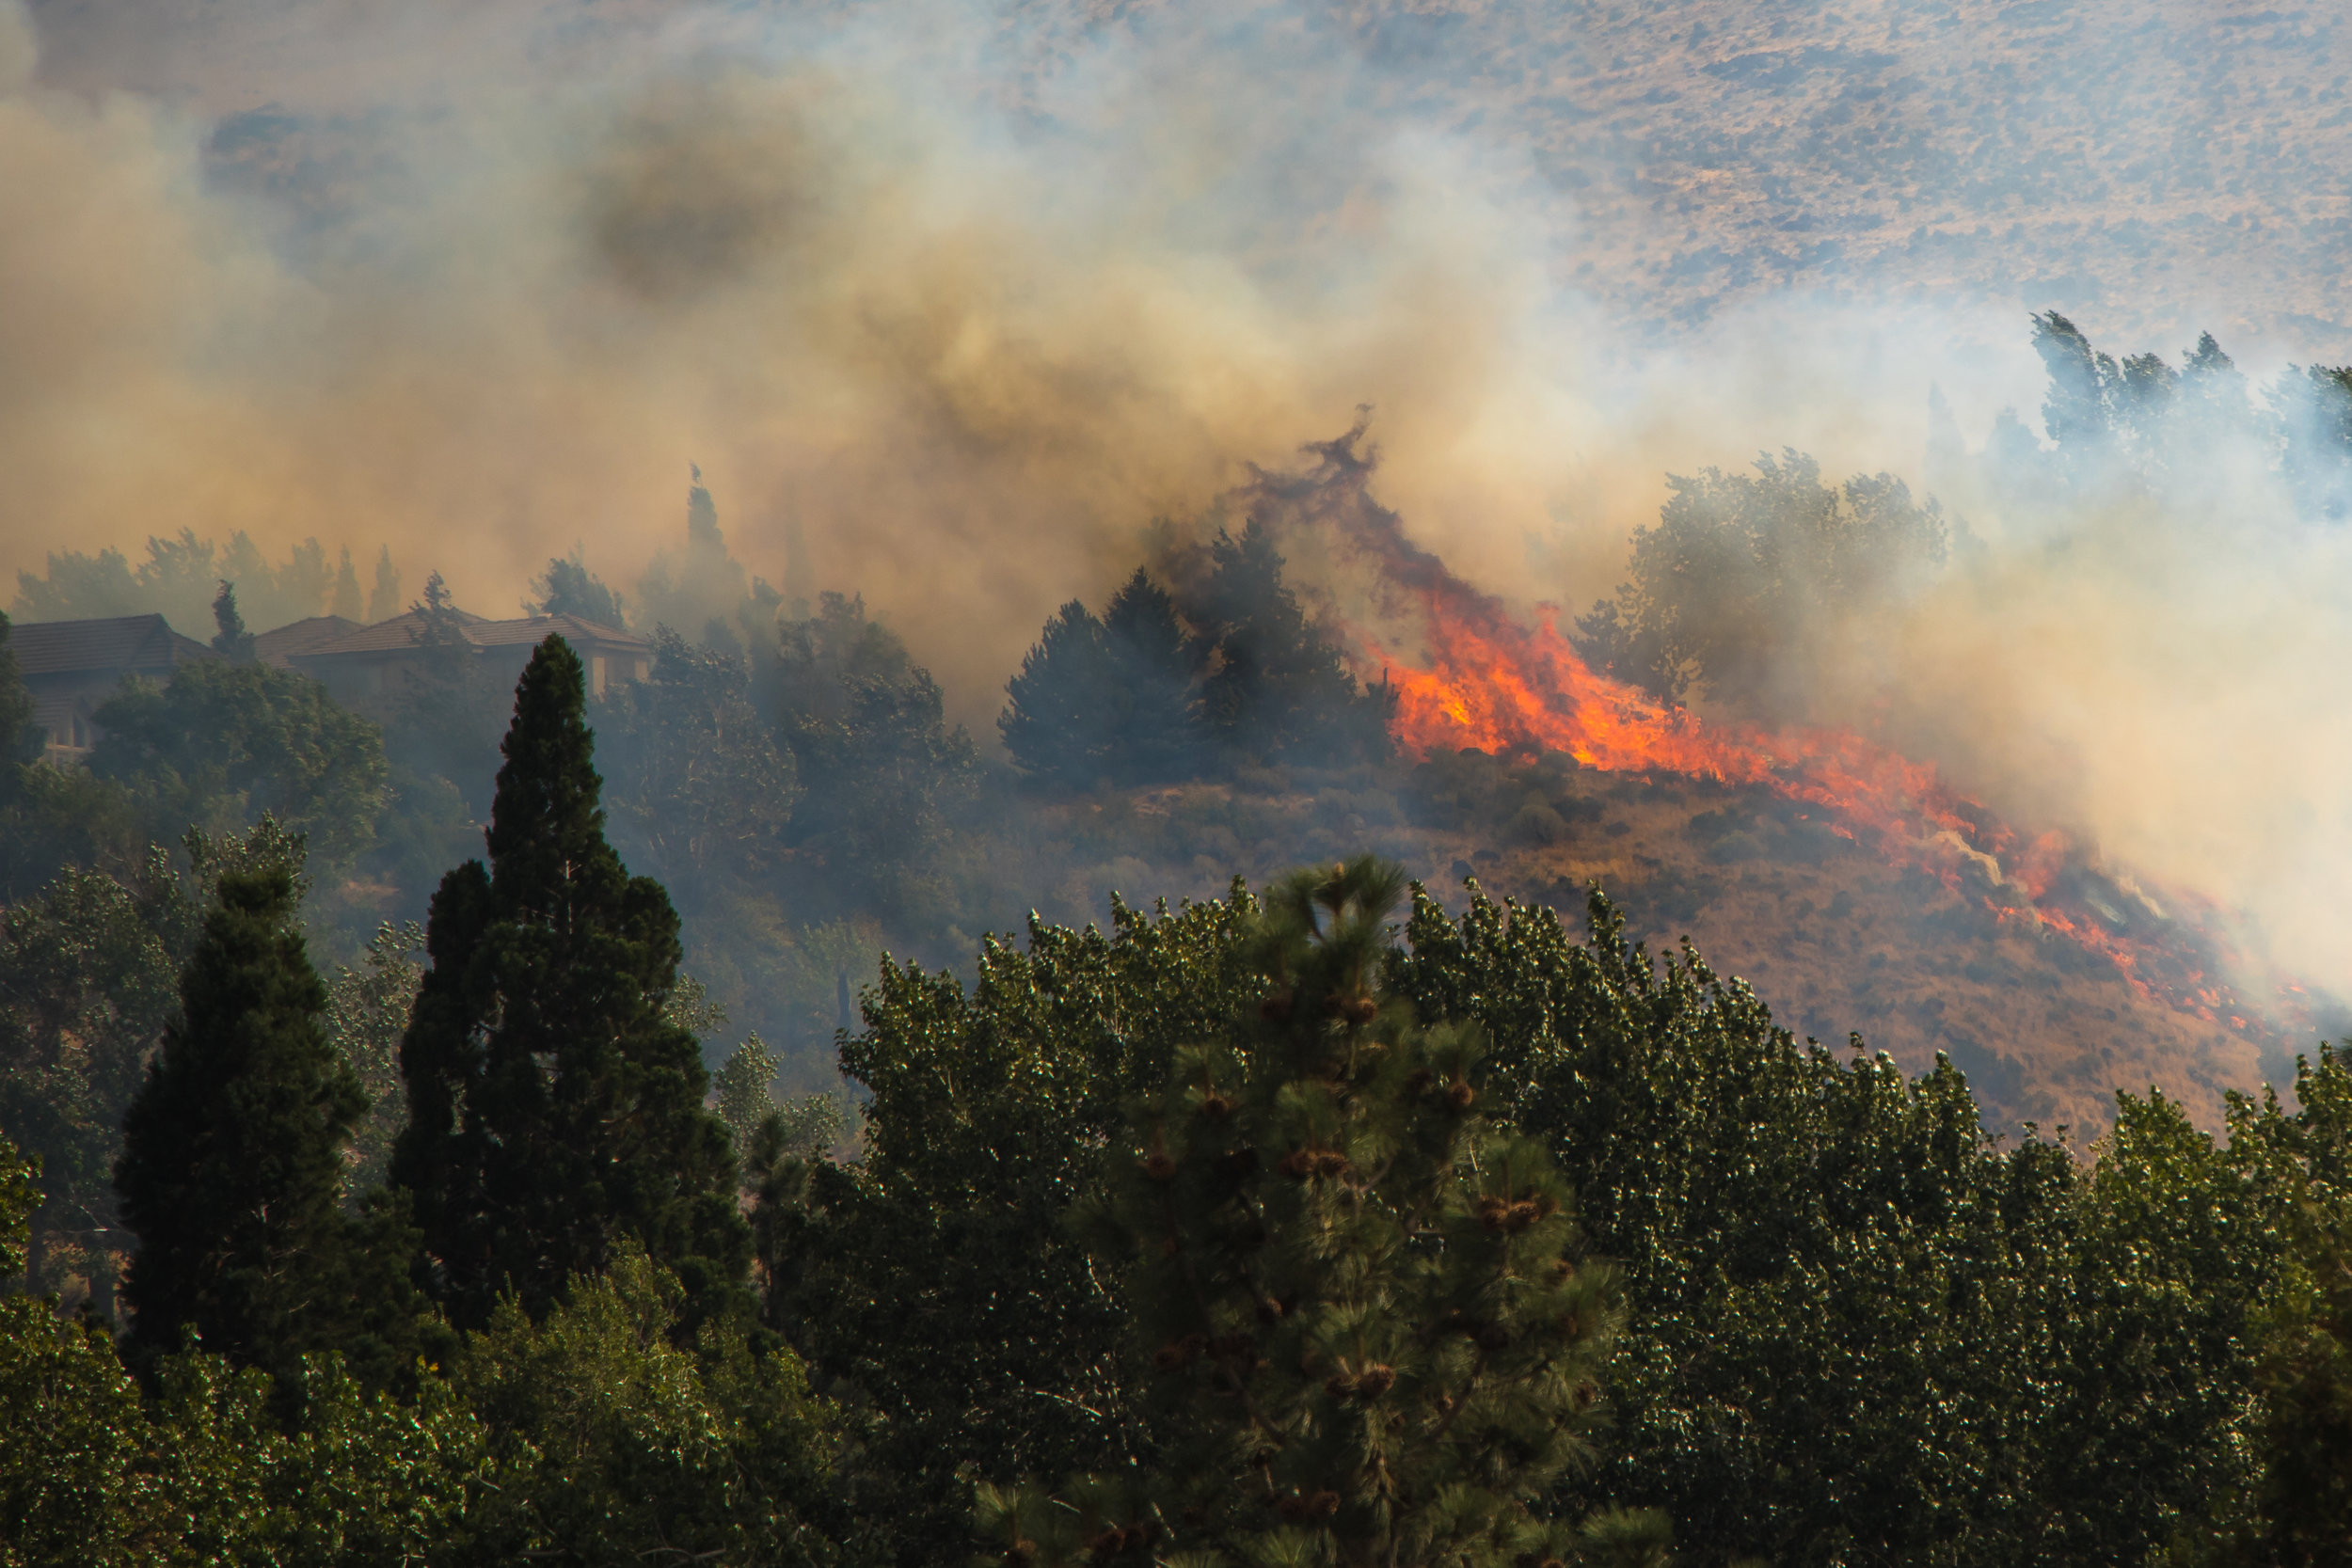 The Woodchuck Fire was a quick fire in the Juniper Ridge neighborhood in west Reno. It quickly threatened homes, but ultimately only a few fences were damaged.